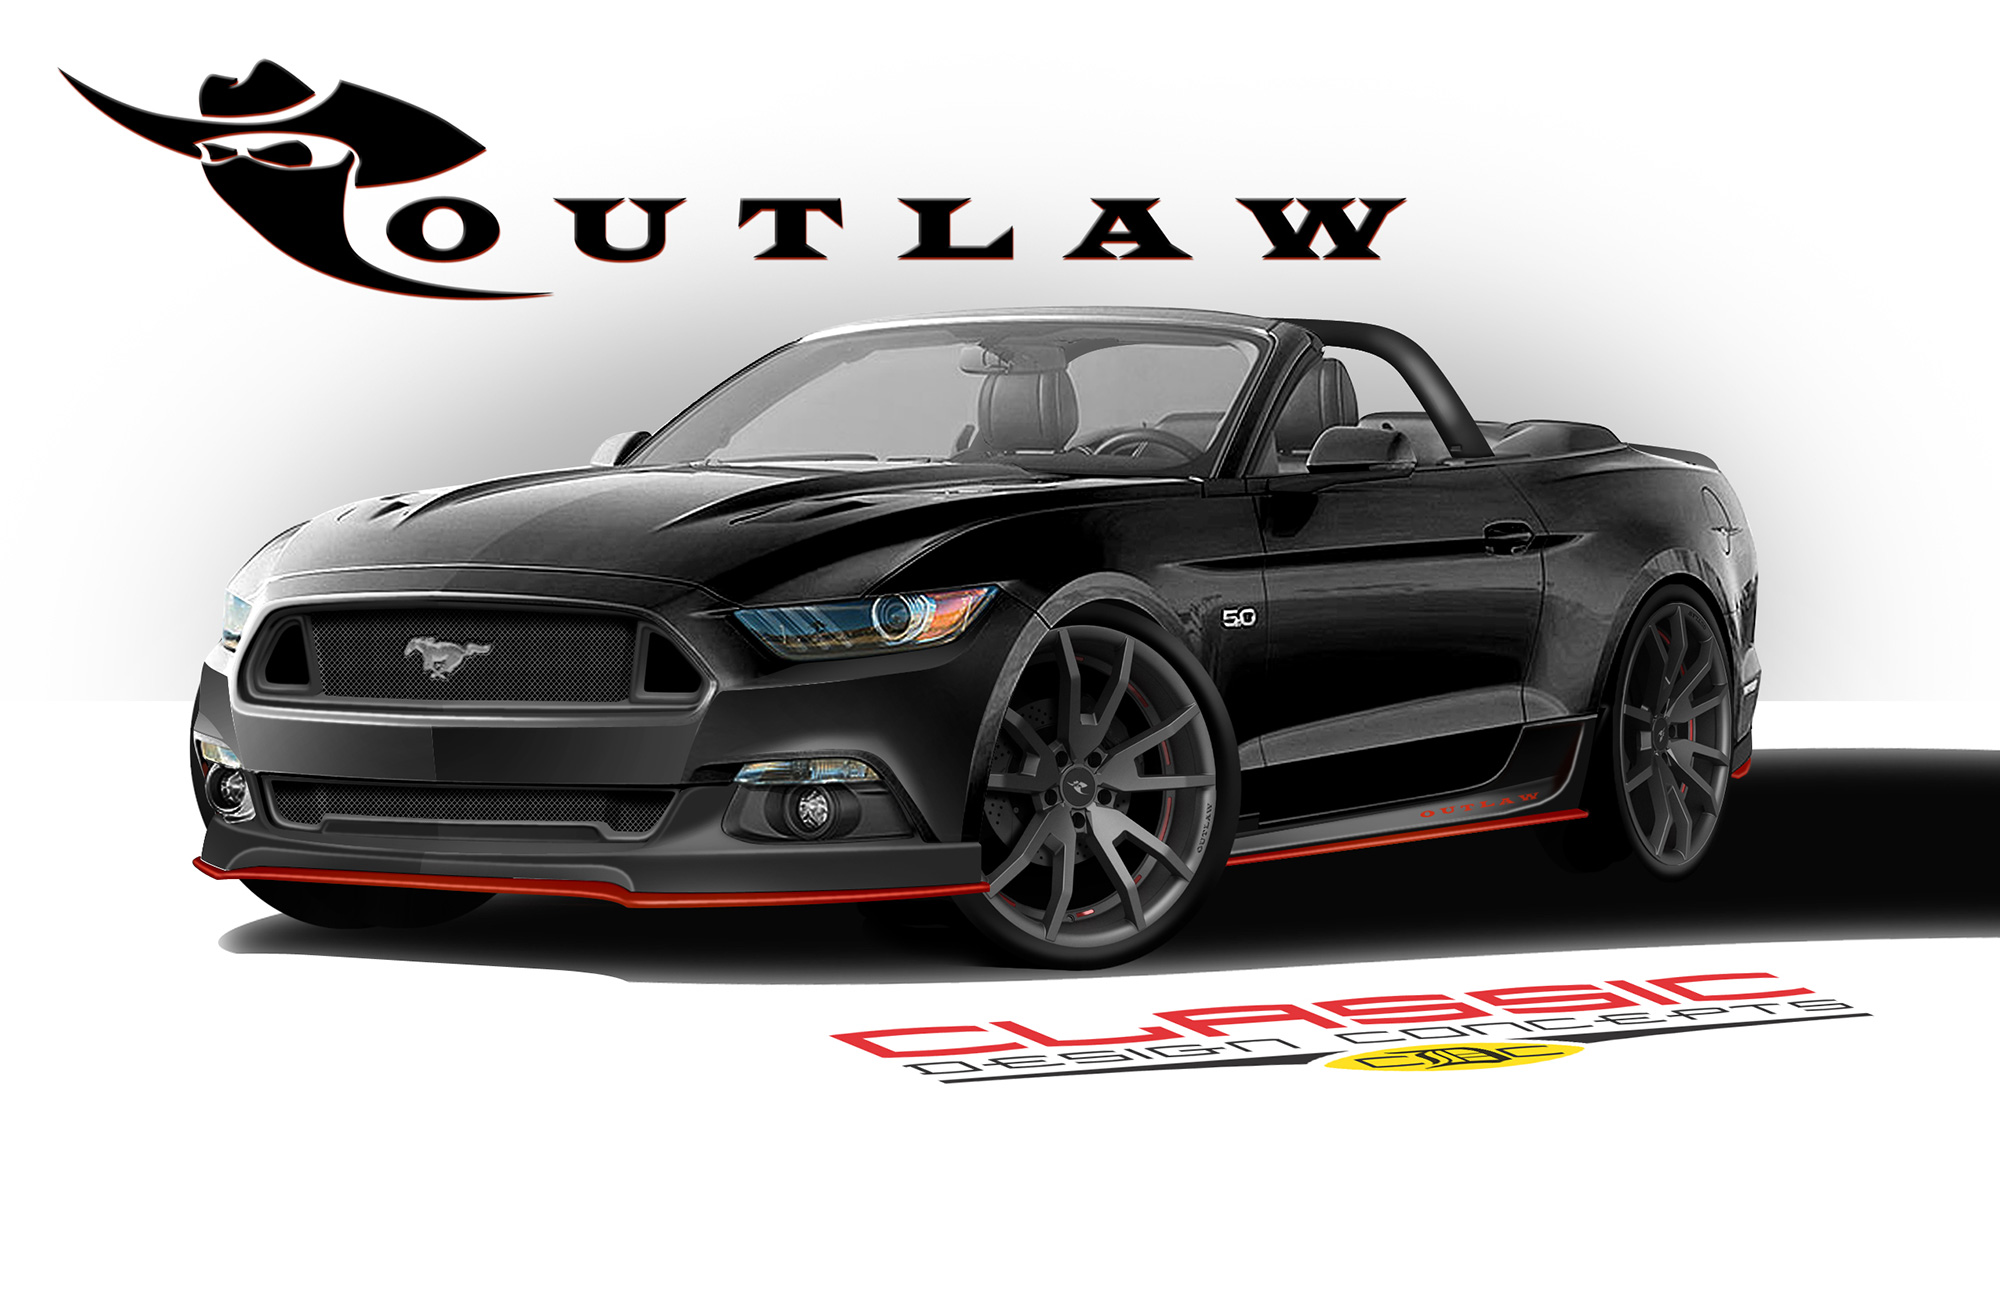 cdc-outlaw-convertible-front.jpg